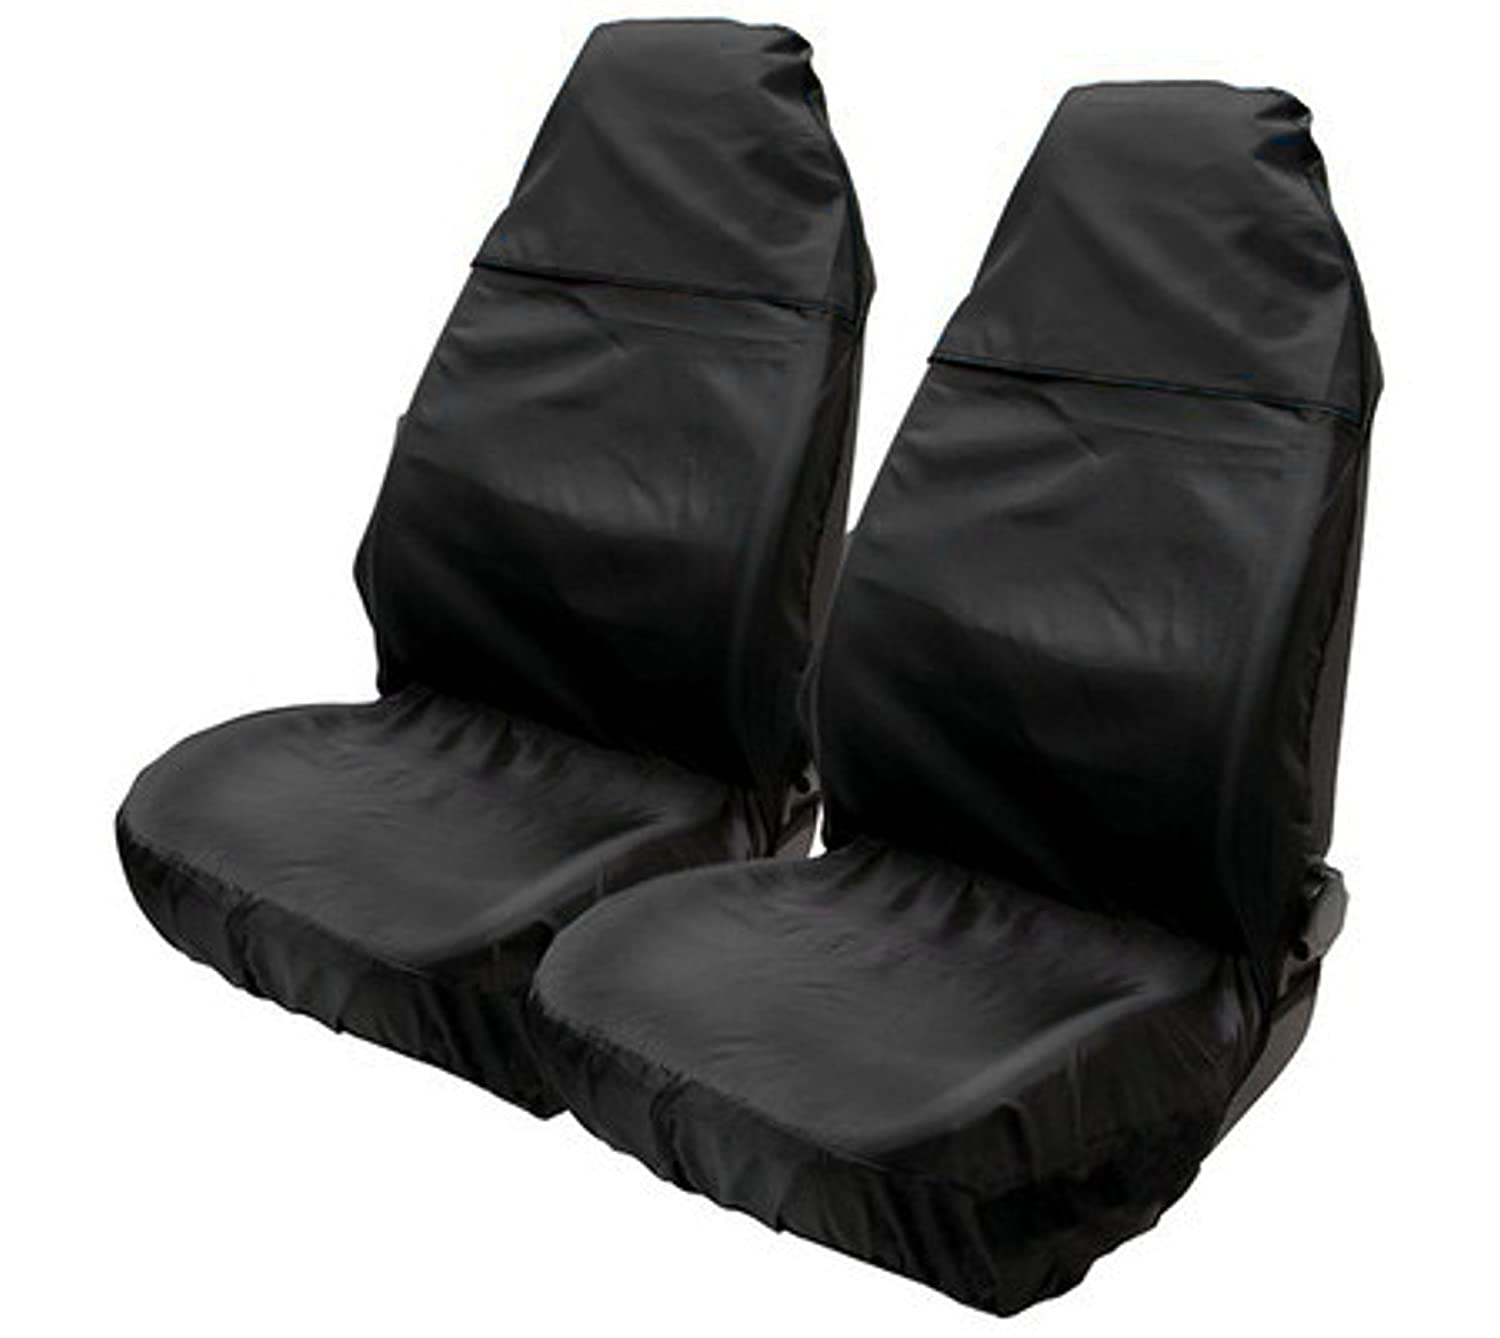 Black ASC Nylon Seat Cover Protector Water Resistant